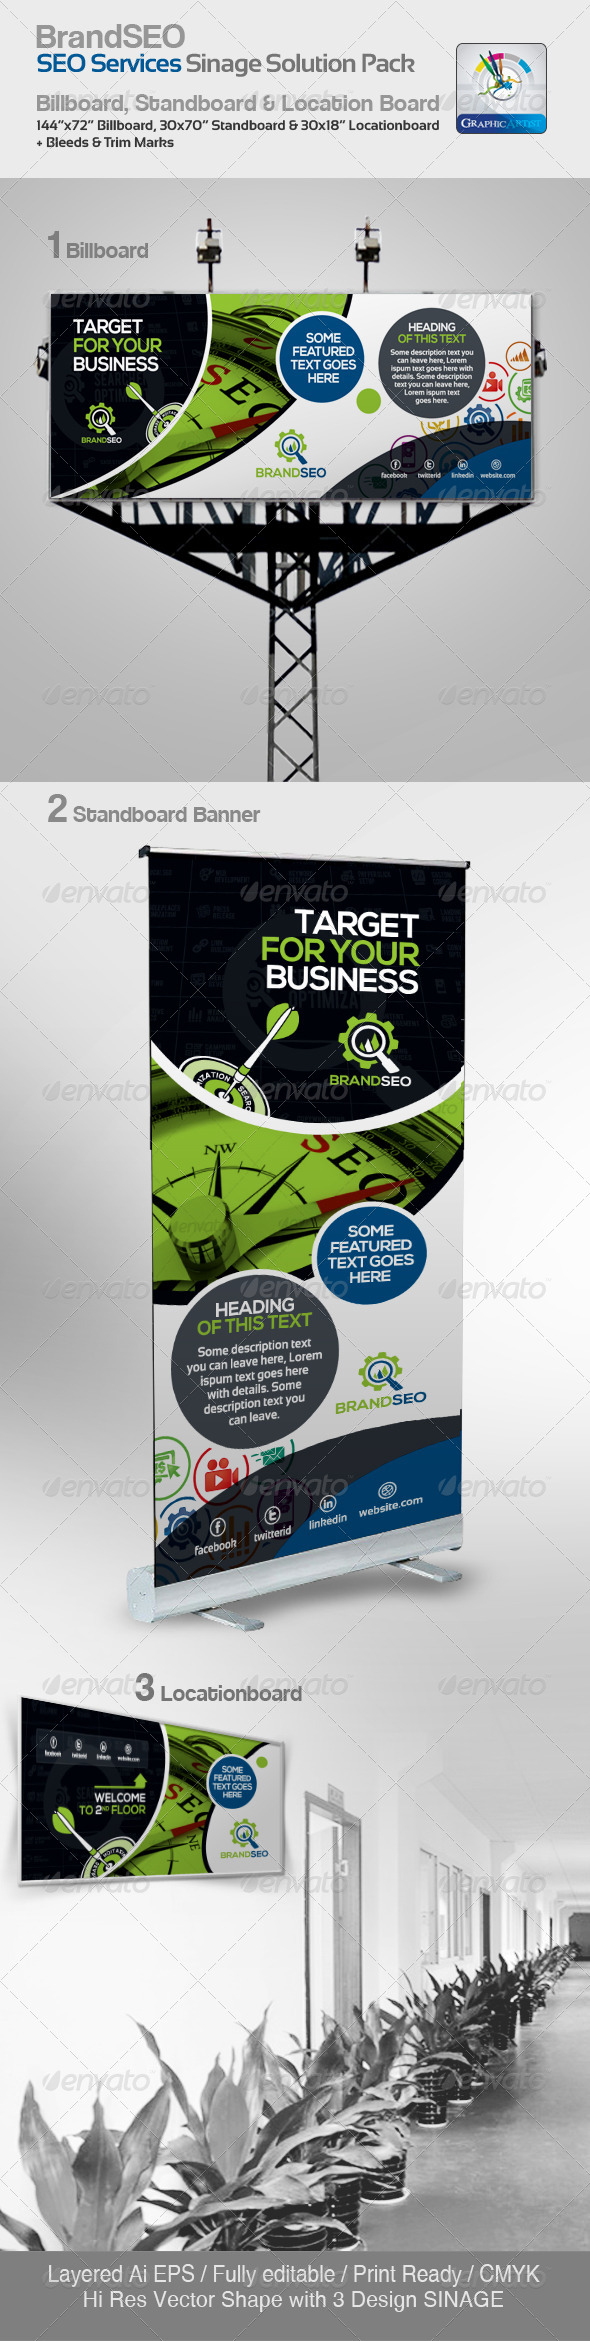 GraphicRiver BrandSEO Creative SEO Service Signage Solution 4354410